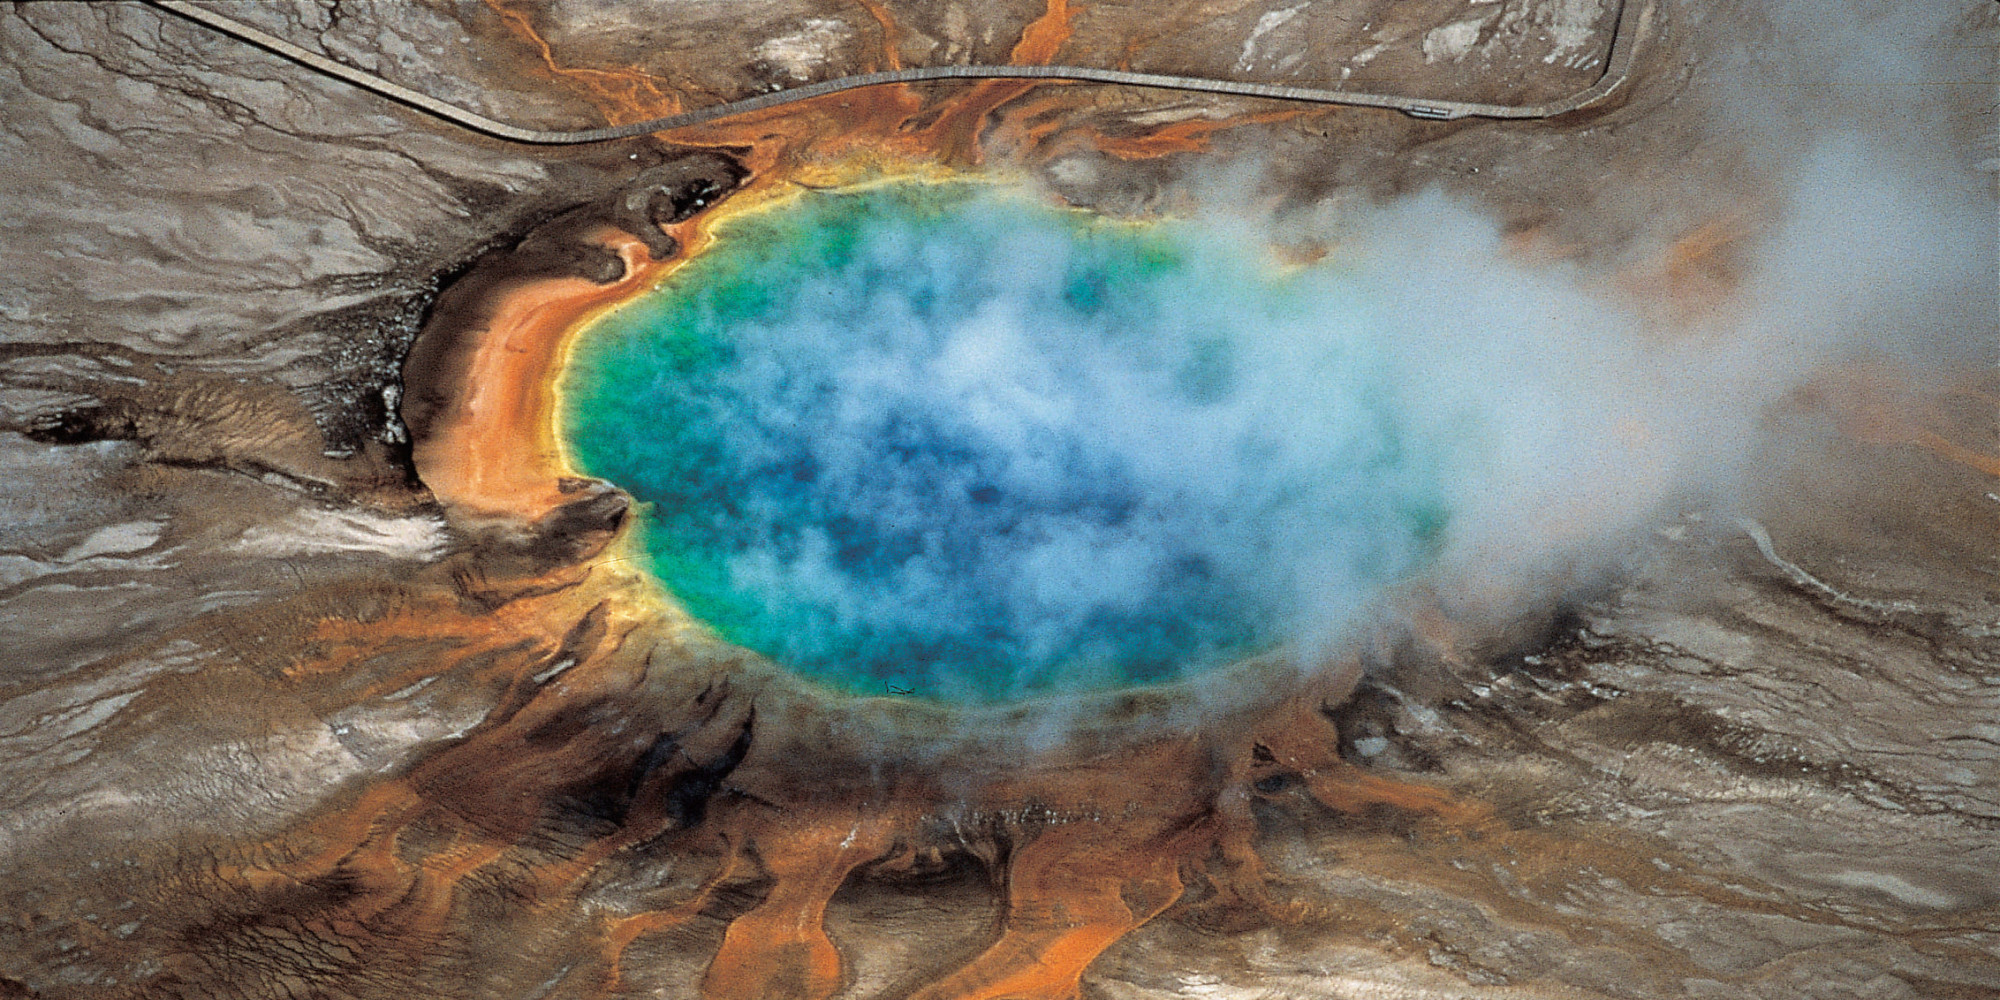 Vast Chamber Of Molten Rock Discovered Under Yellowstone